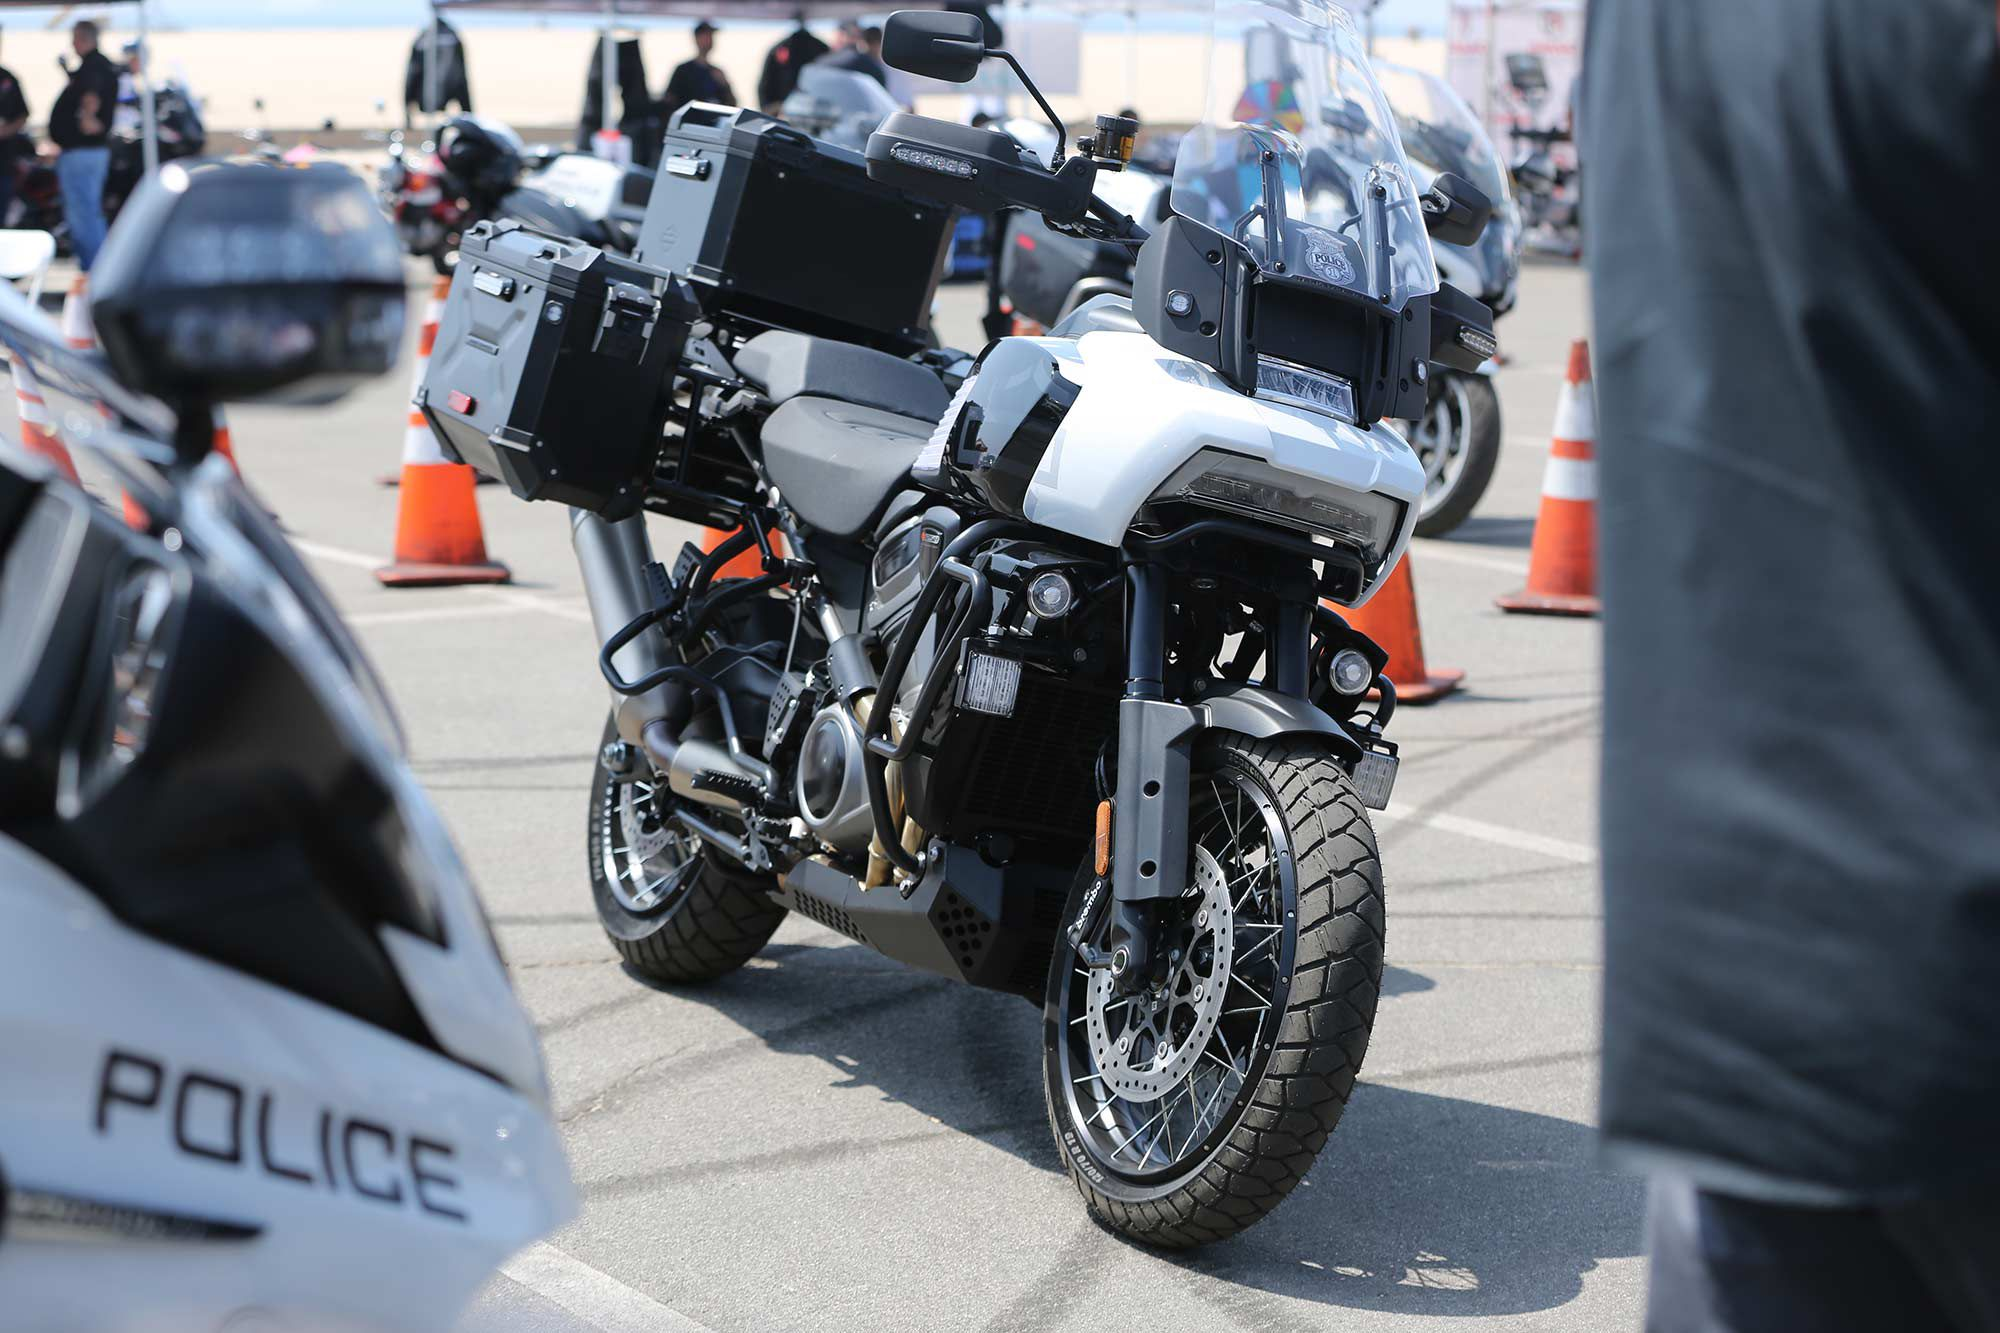 A Pan America police bike could allow cops to access places unreachable on the touring machines that are being used currently.